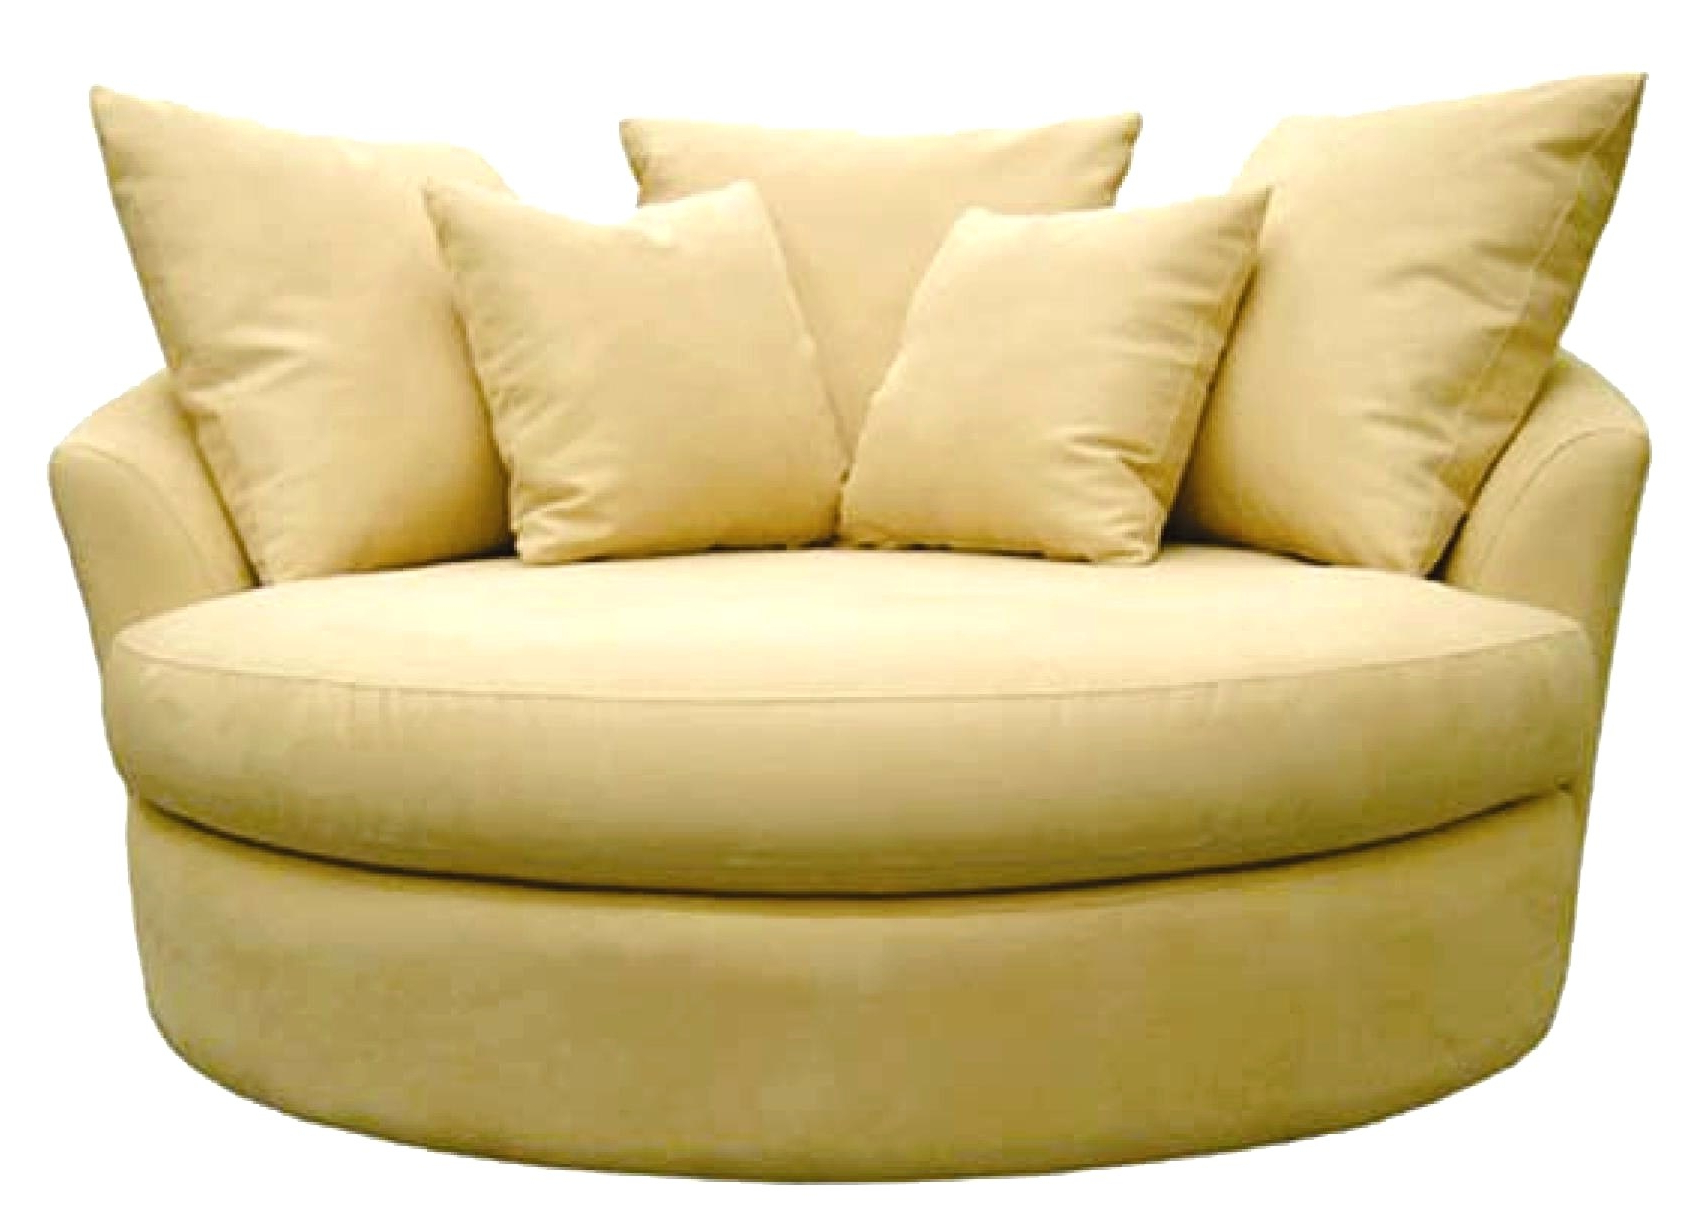 Engrossing Swivel Chairs Living Room Round Sofa Chair Living Room Intended For Newest Round Sofa Chairs (View 5 of 20)